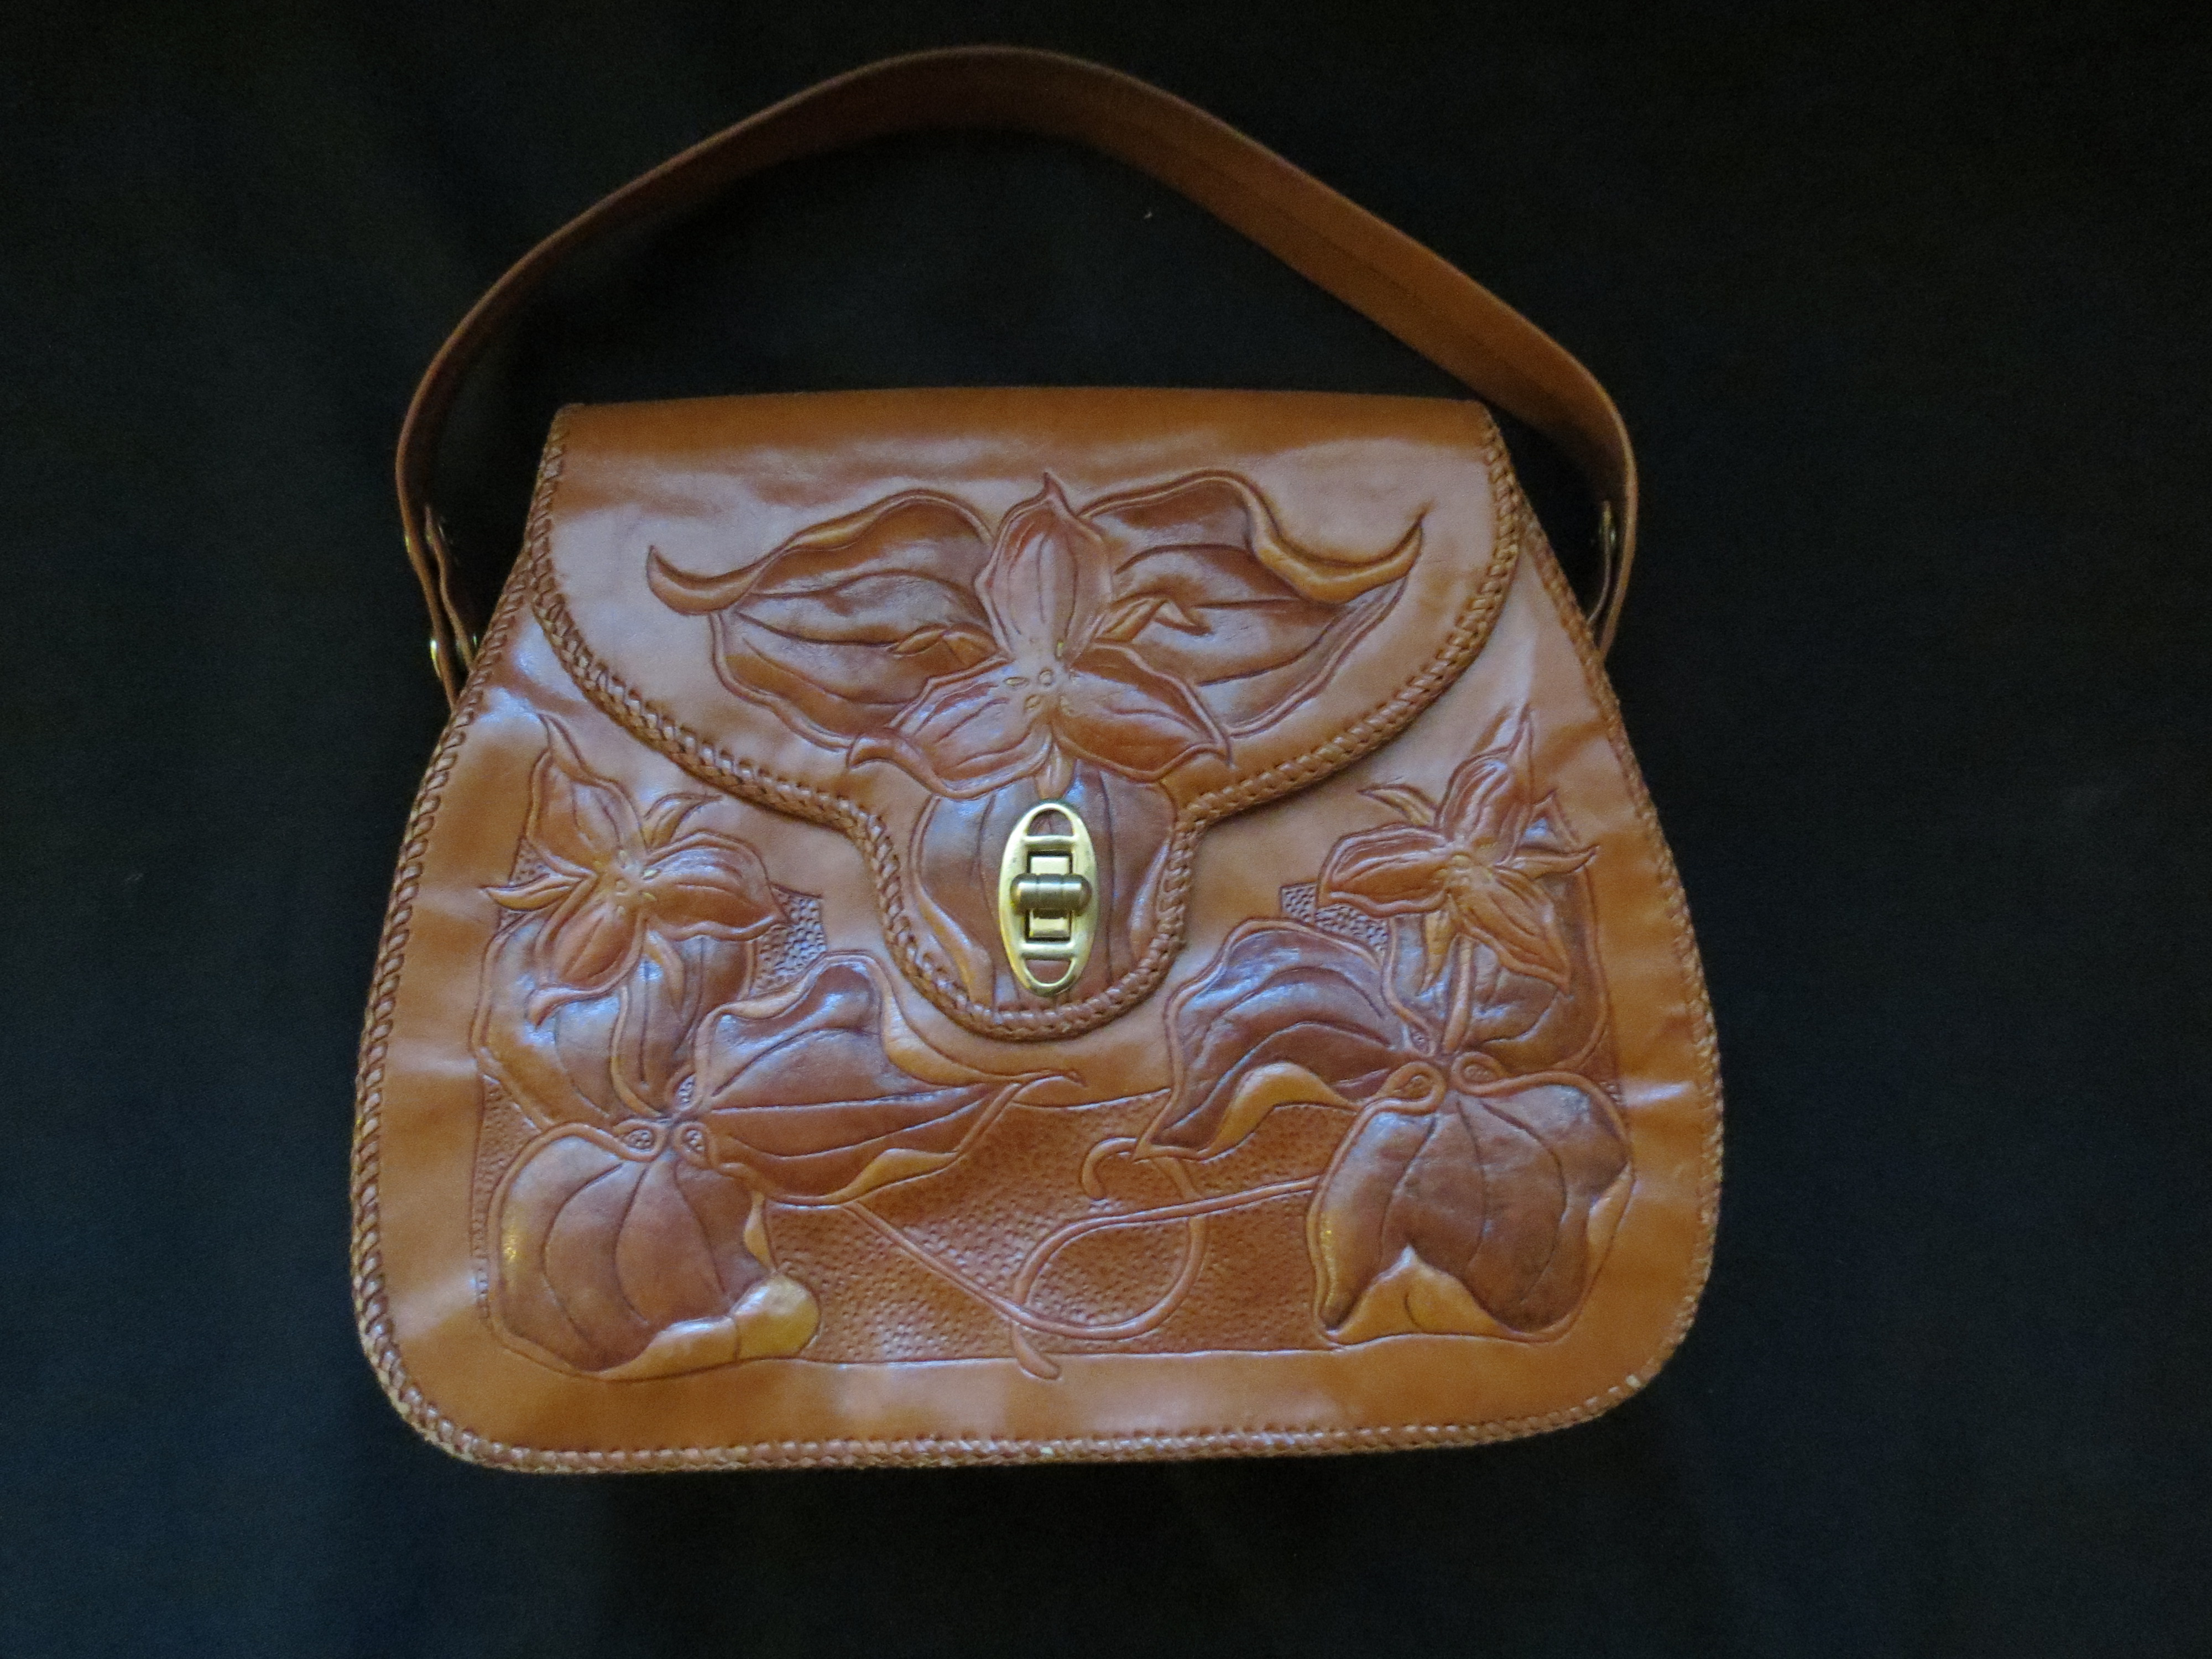 HANDMADE TOOLED LEATHER PURSE FROM CANADA